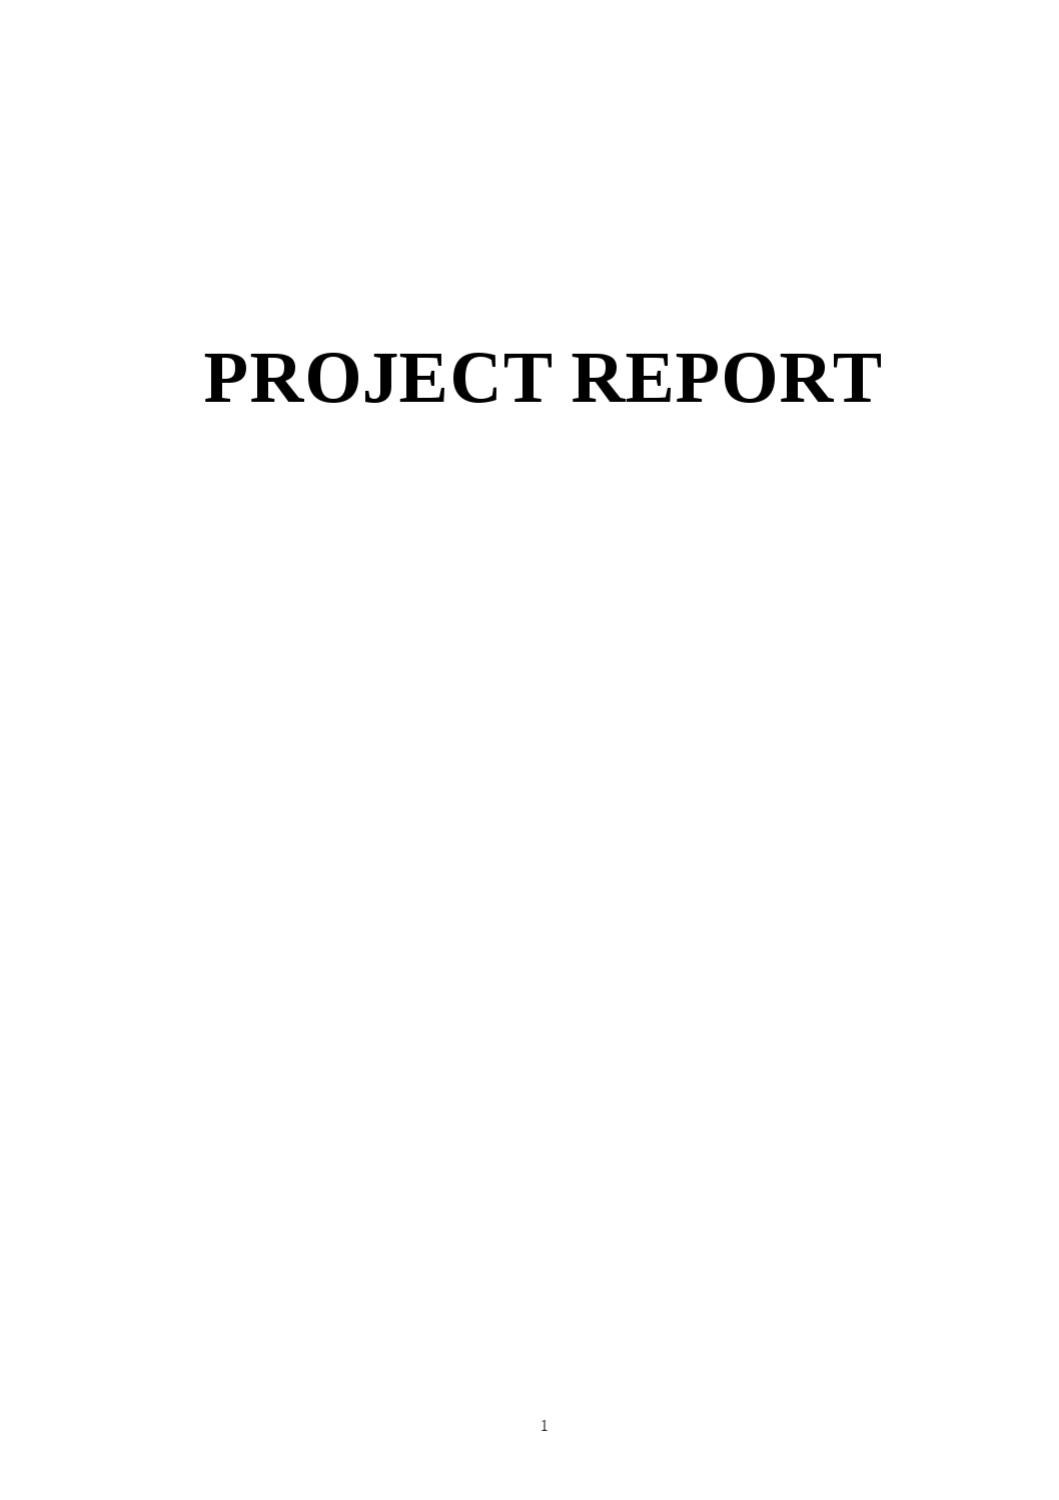 Ratio Analysis Project Report by Sanjay Gupta - issuu